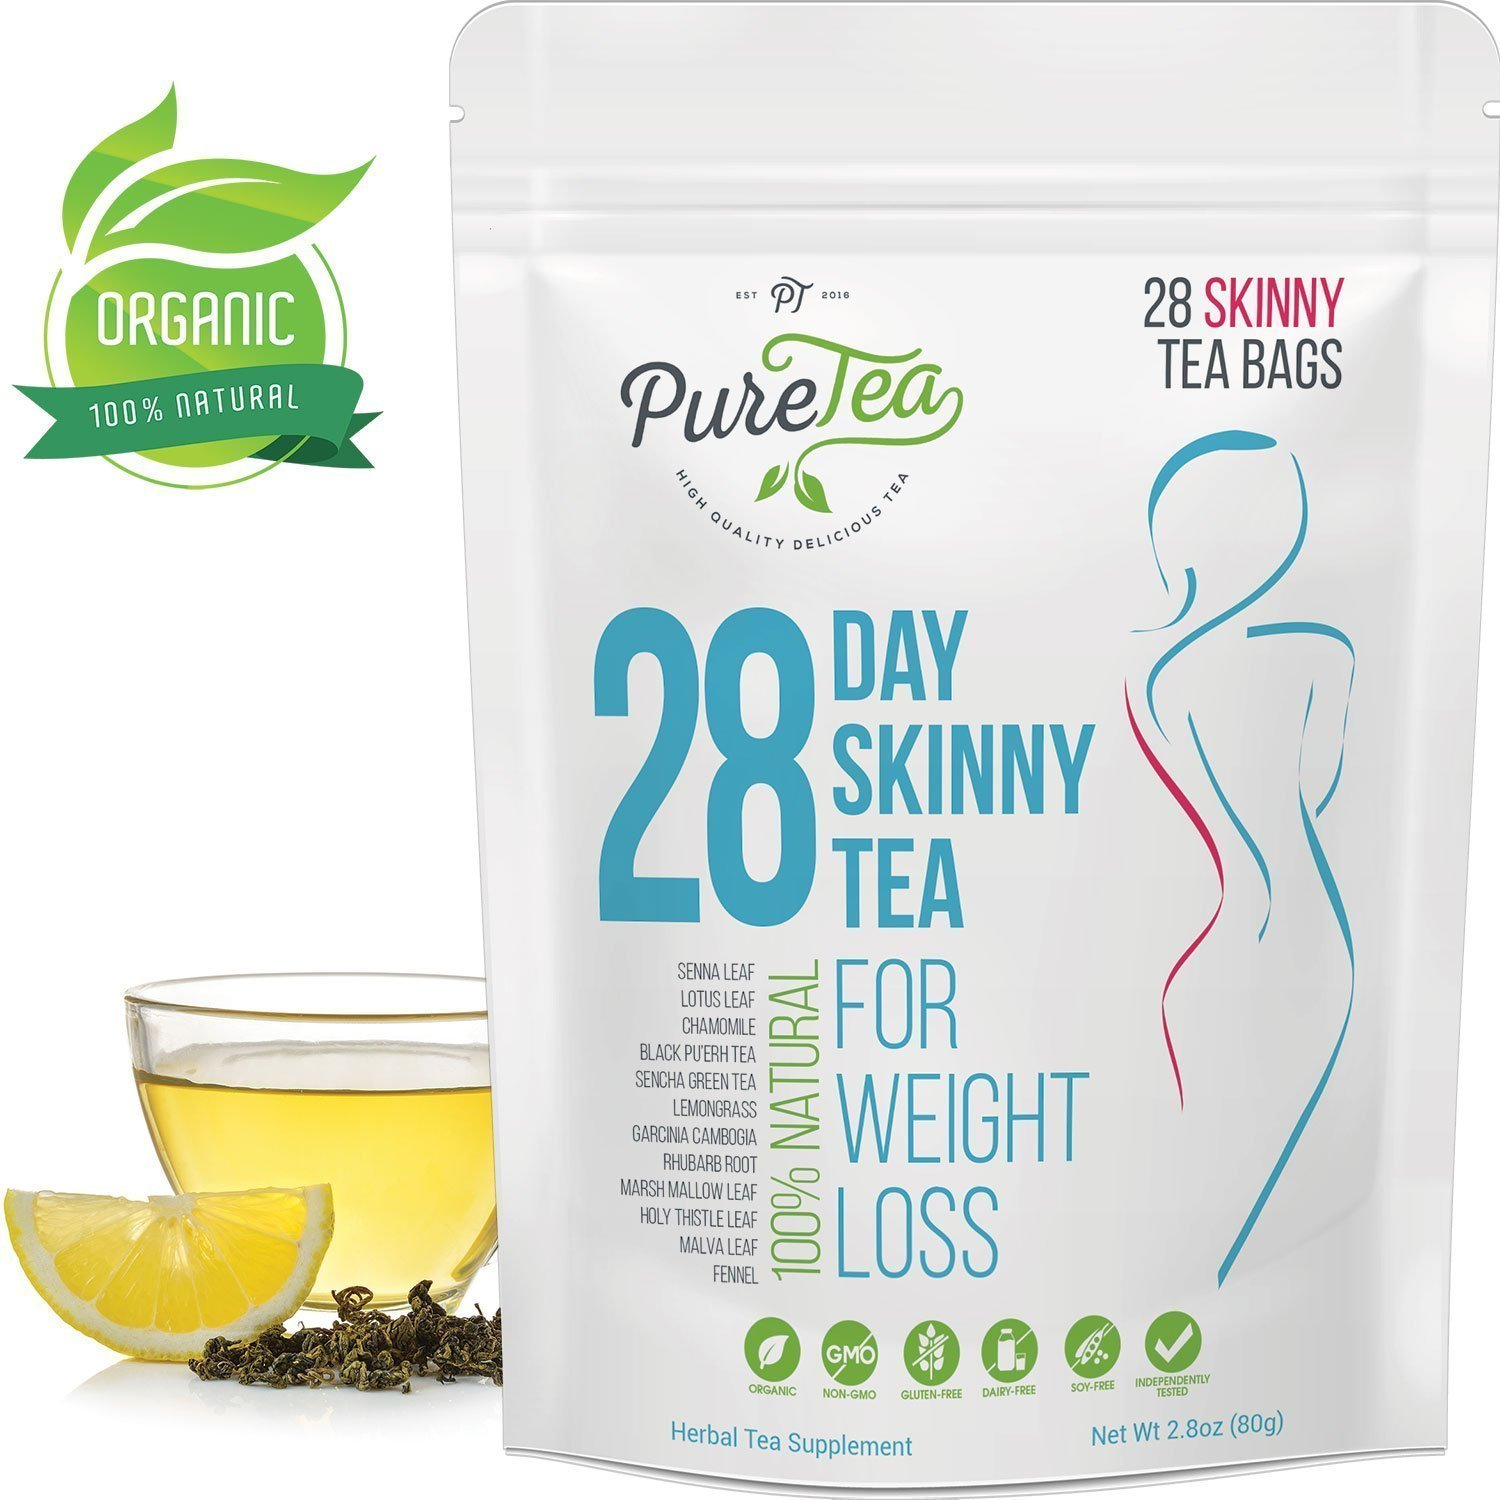 Skinny Tea Weight Loss Detox Cleanse, All Natural Herbal Diet Teatox Bags - Boost Metabolism, Reduce Bloating, Release Toxins - Fat Burning Laxative Free Slimming Blend for Women and Men - 28 Days by SilverOnyx